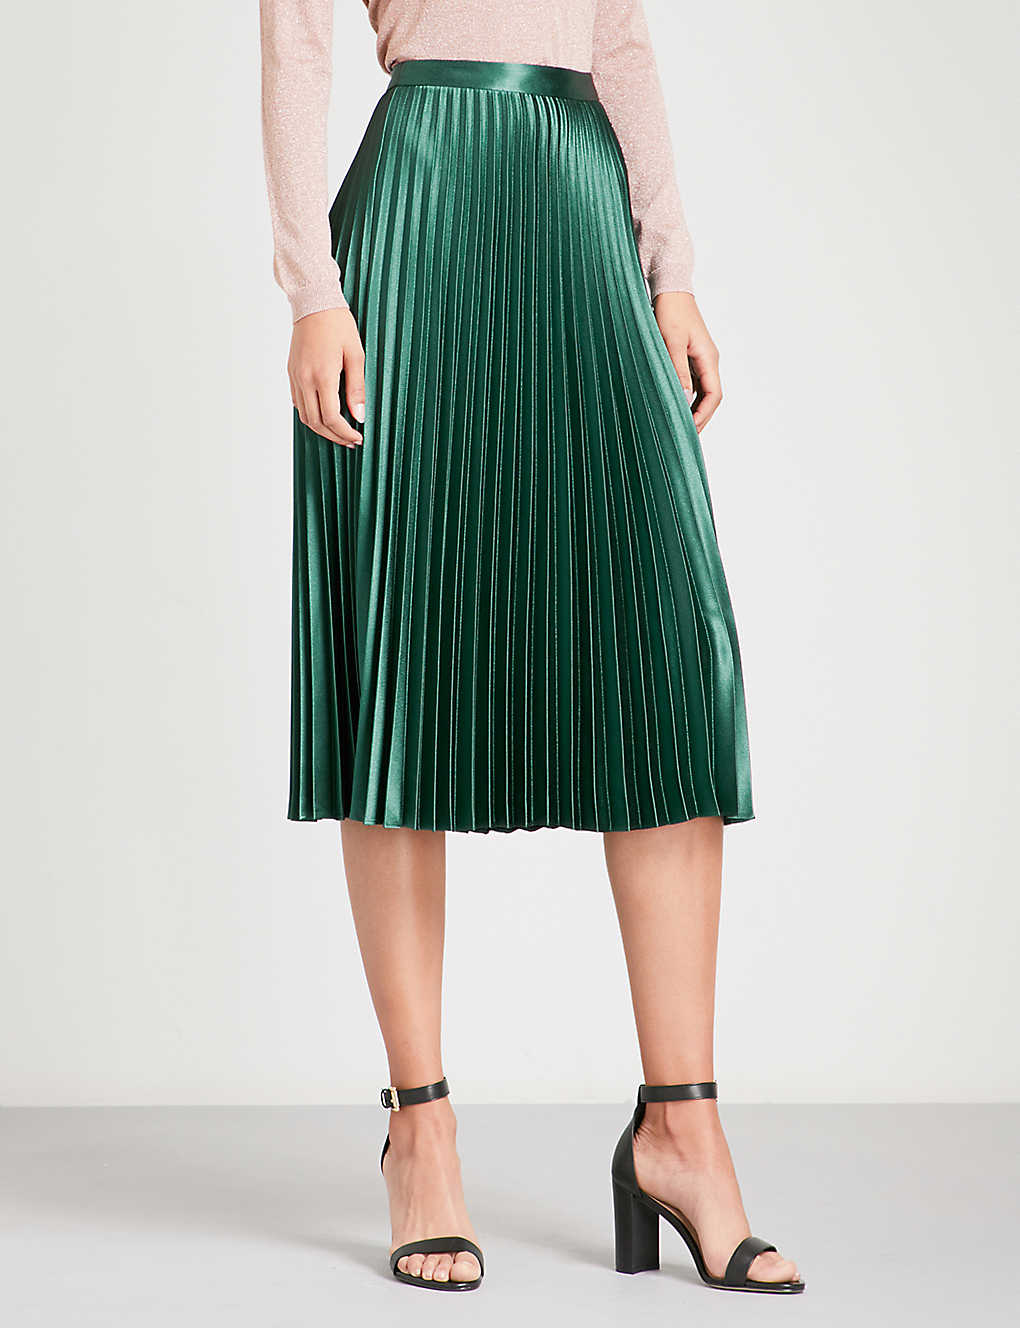 Christian Dior Satin Crepe Skirt